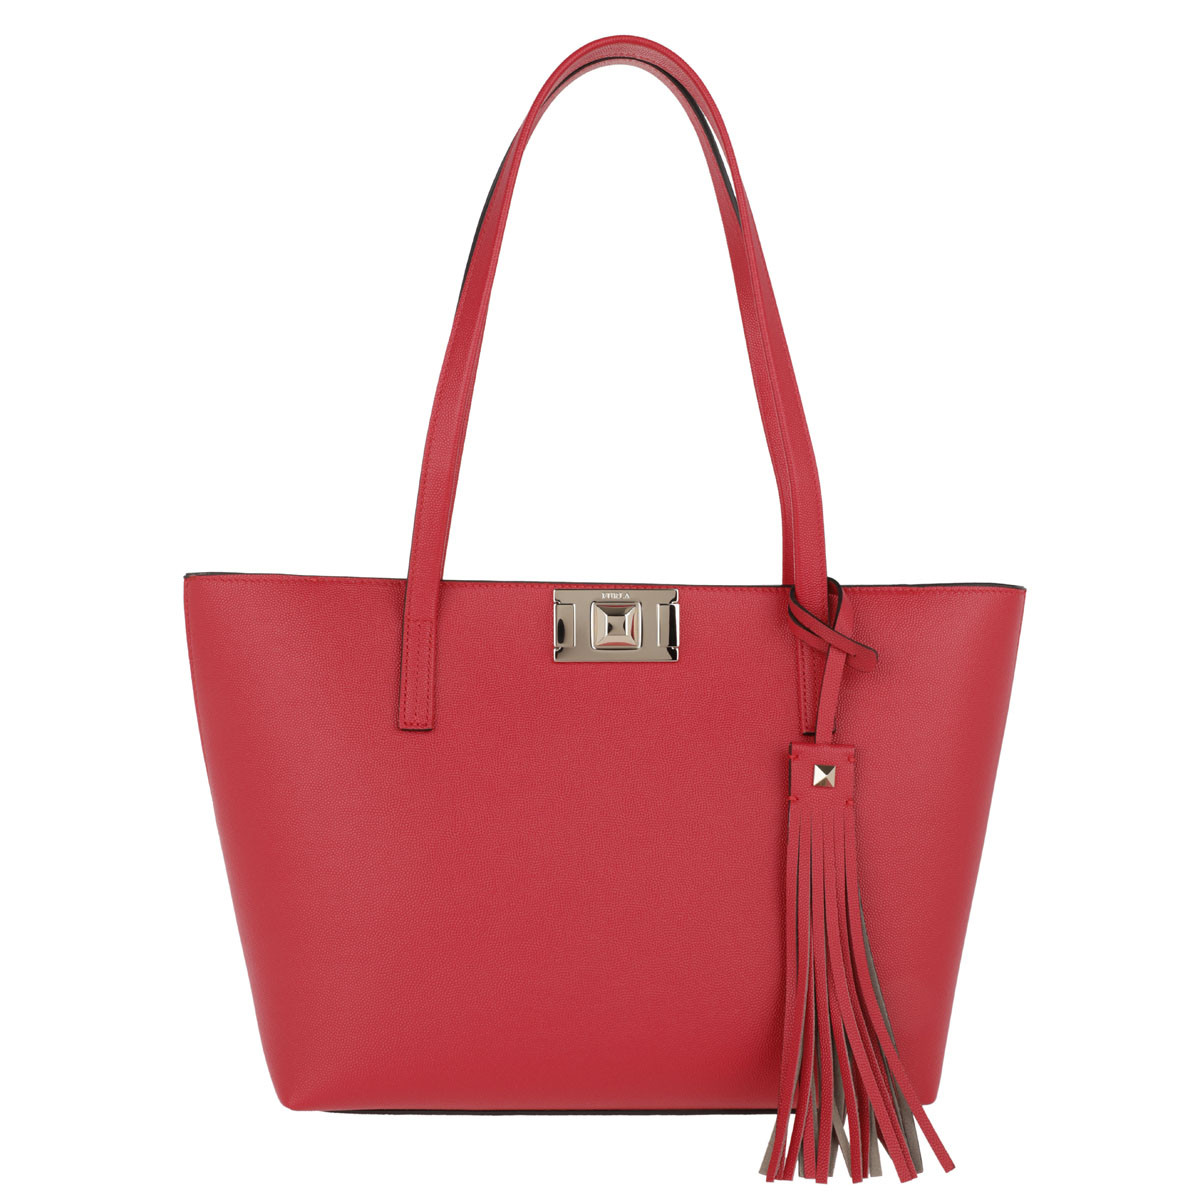 Furla Shopper - Mimi M Tote Fragola - in rot - für Damen